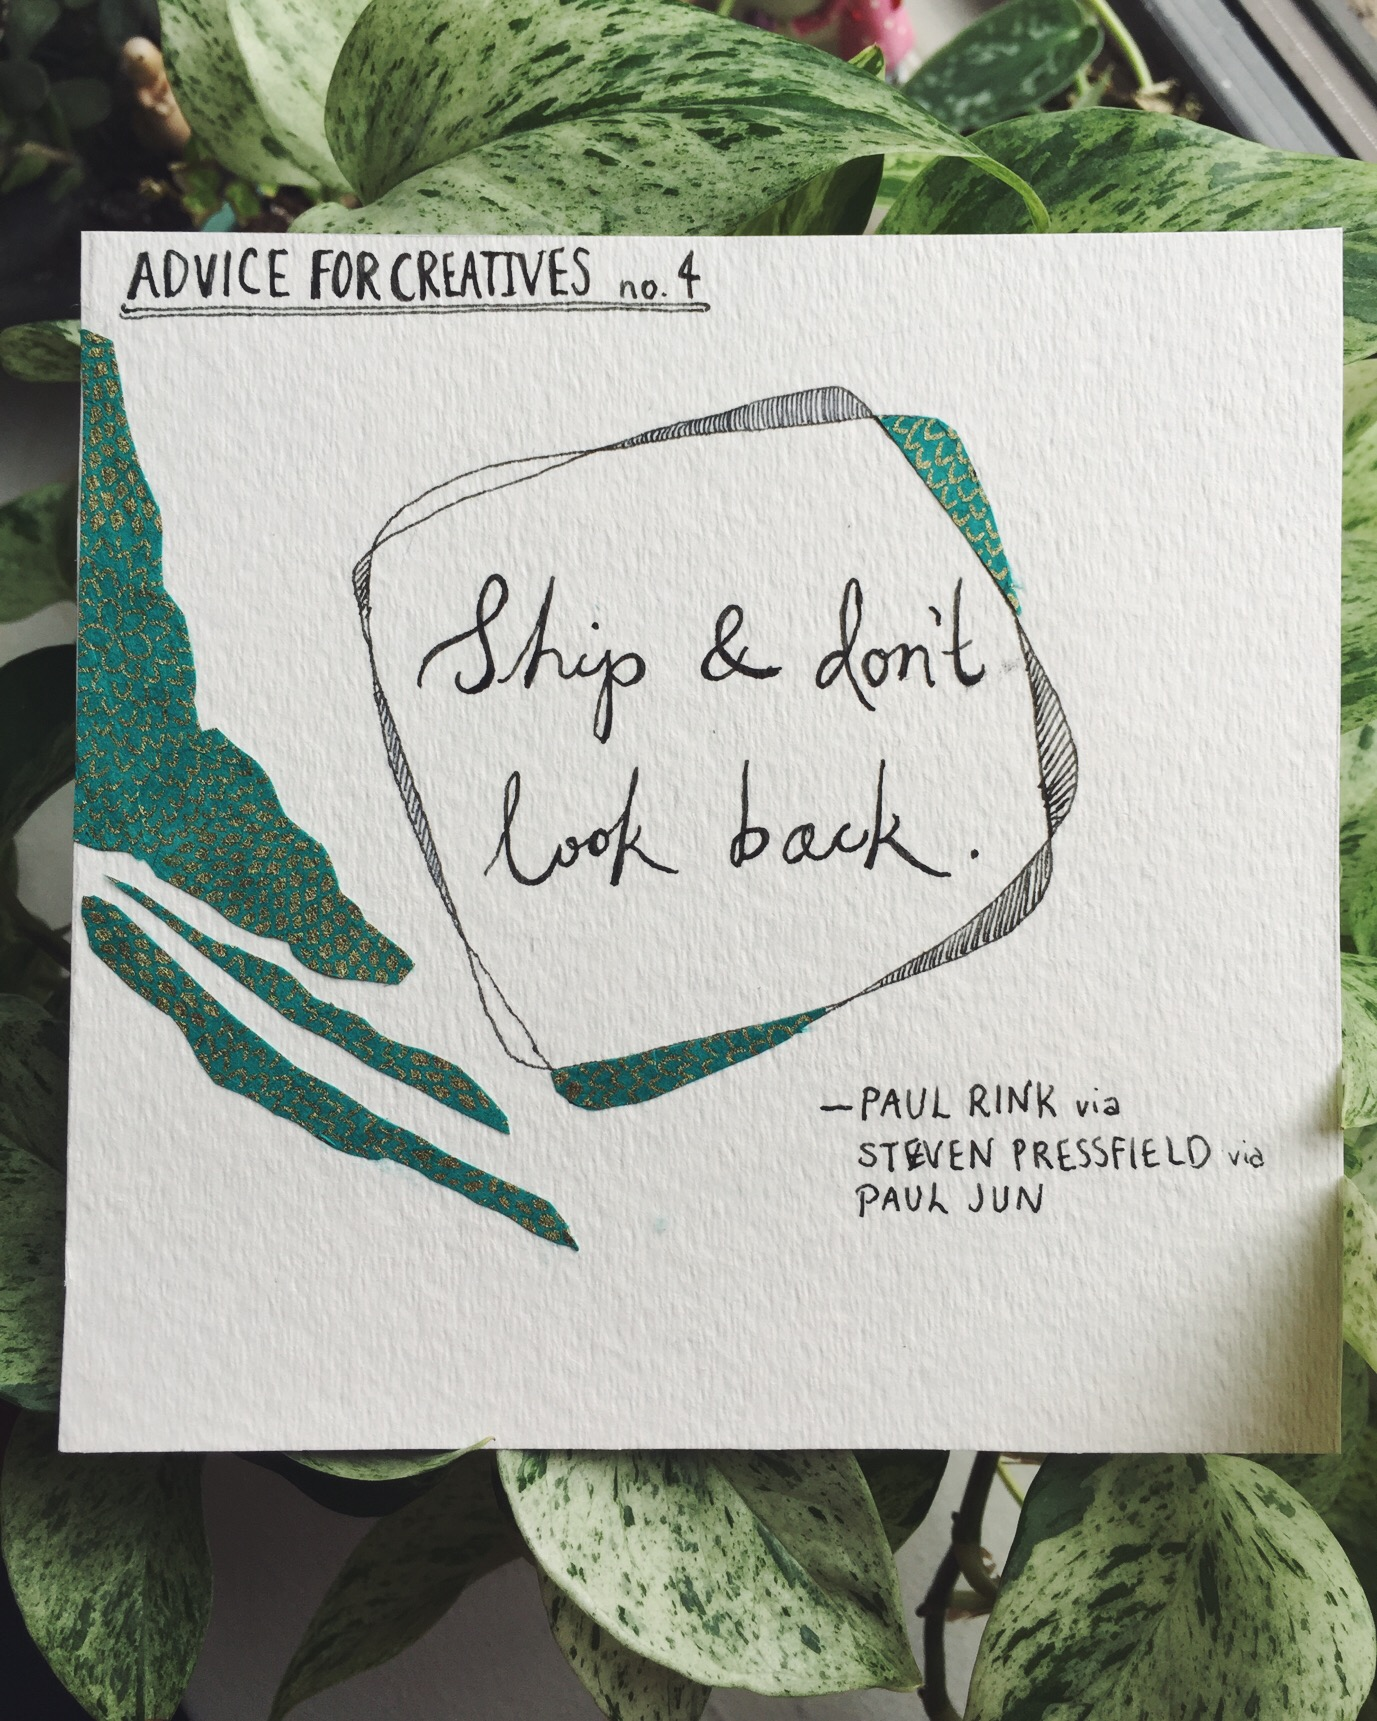 Ship and don't look back.